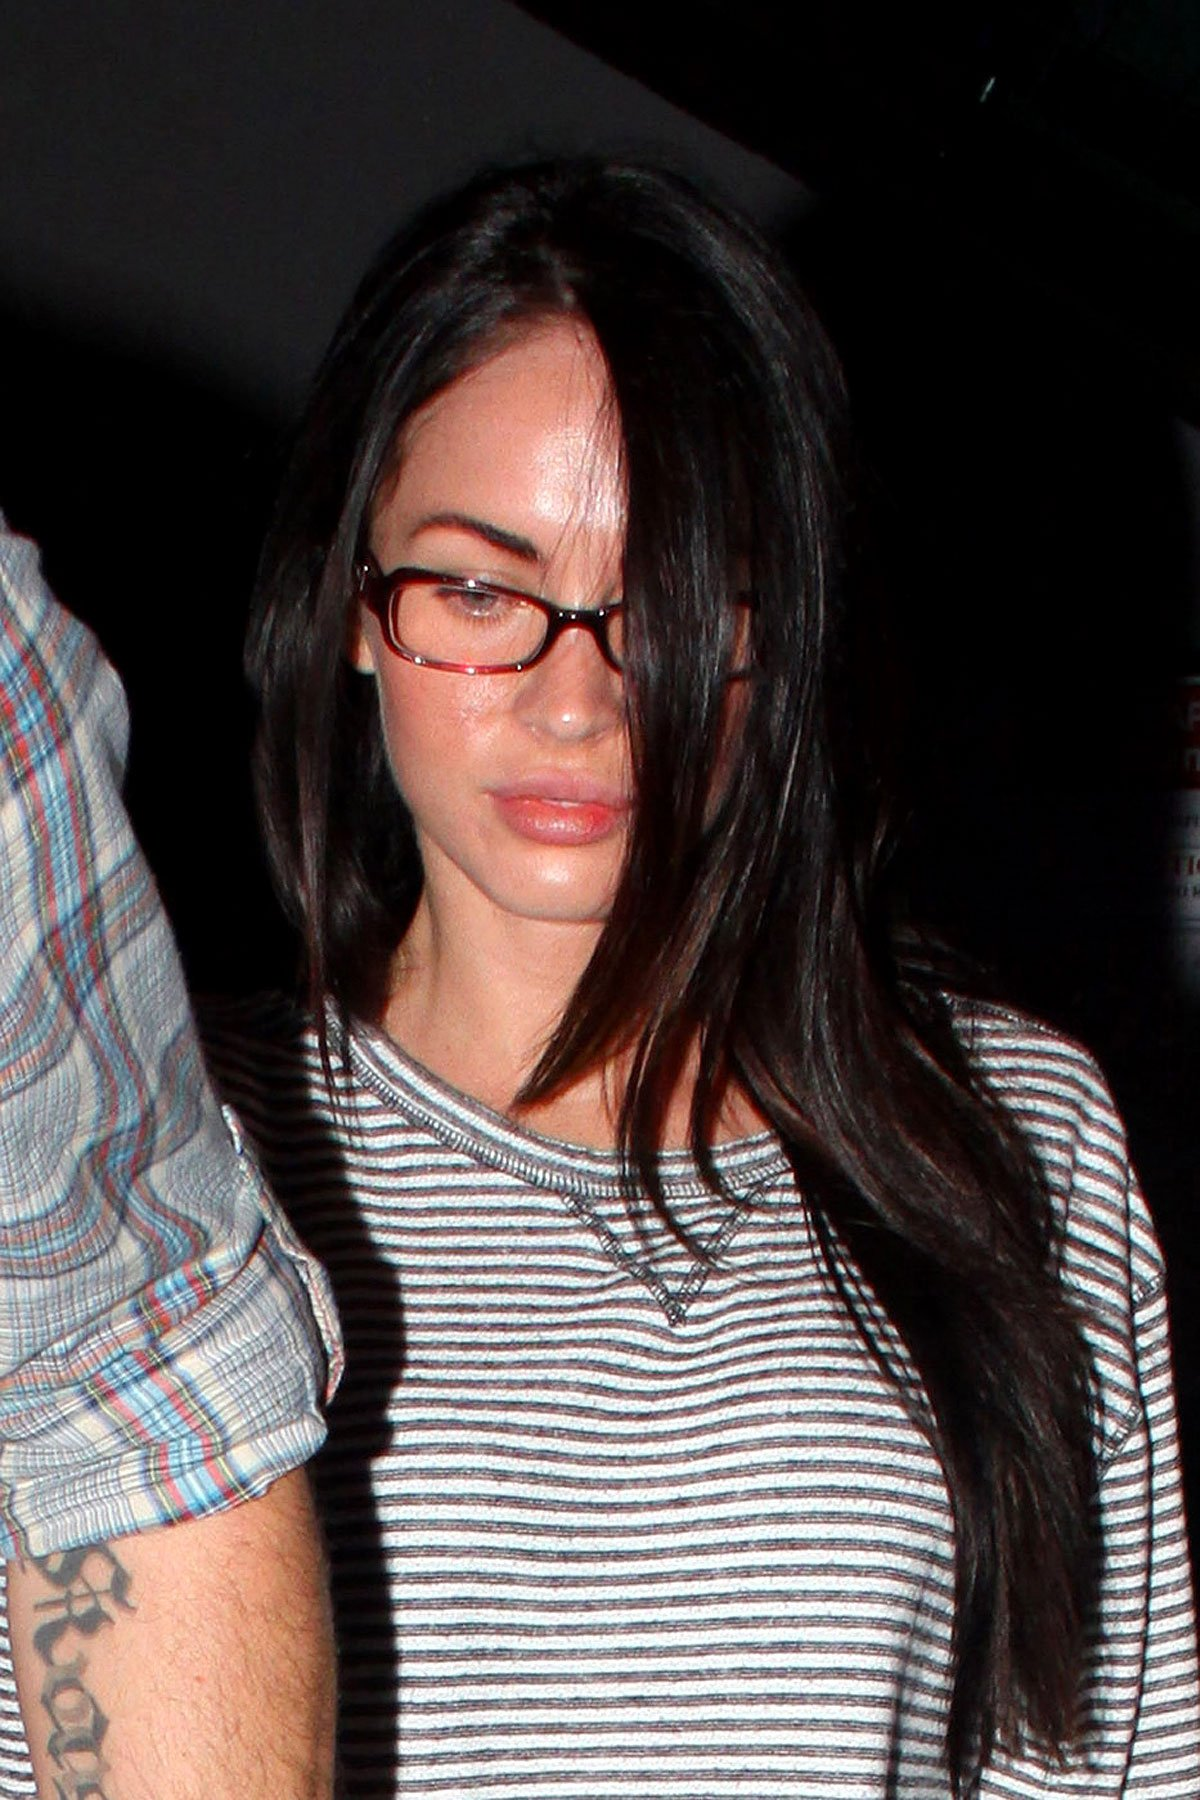 Megan Fox Shows Naked Support for the Lakers (PHOTOS)